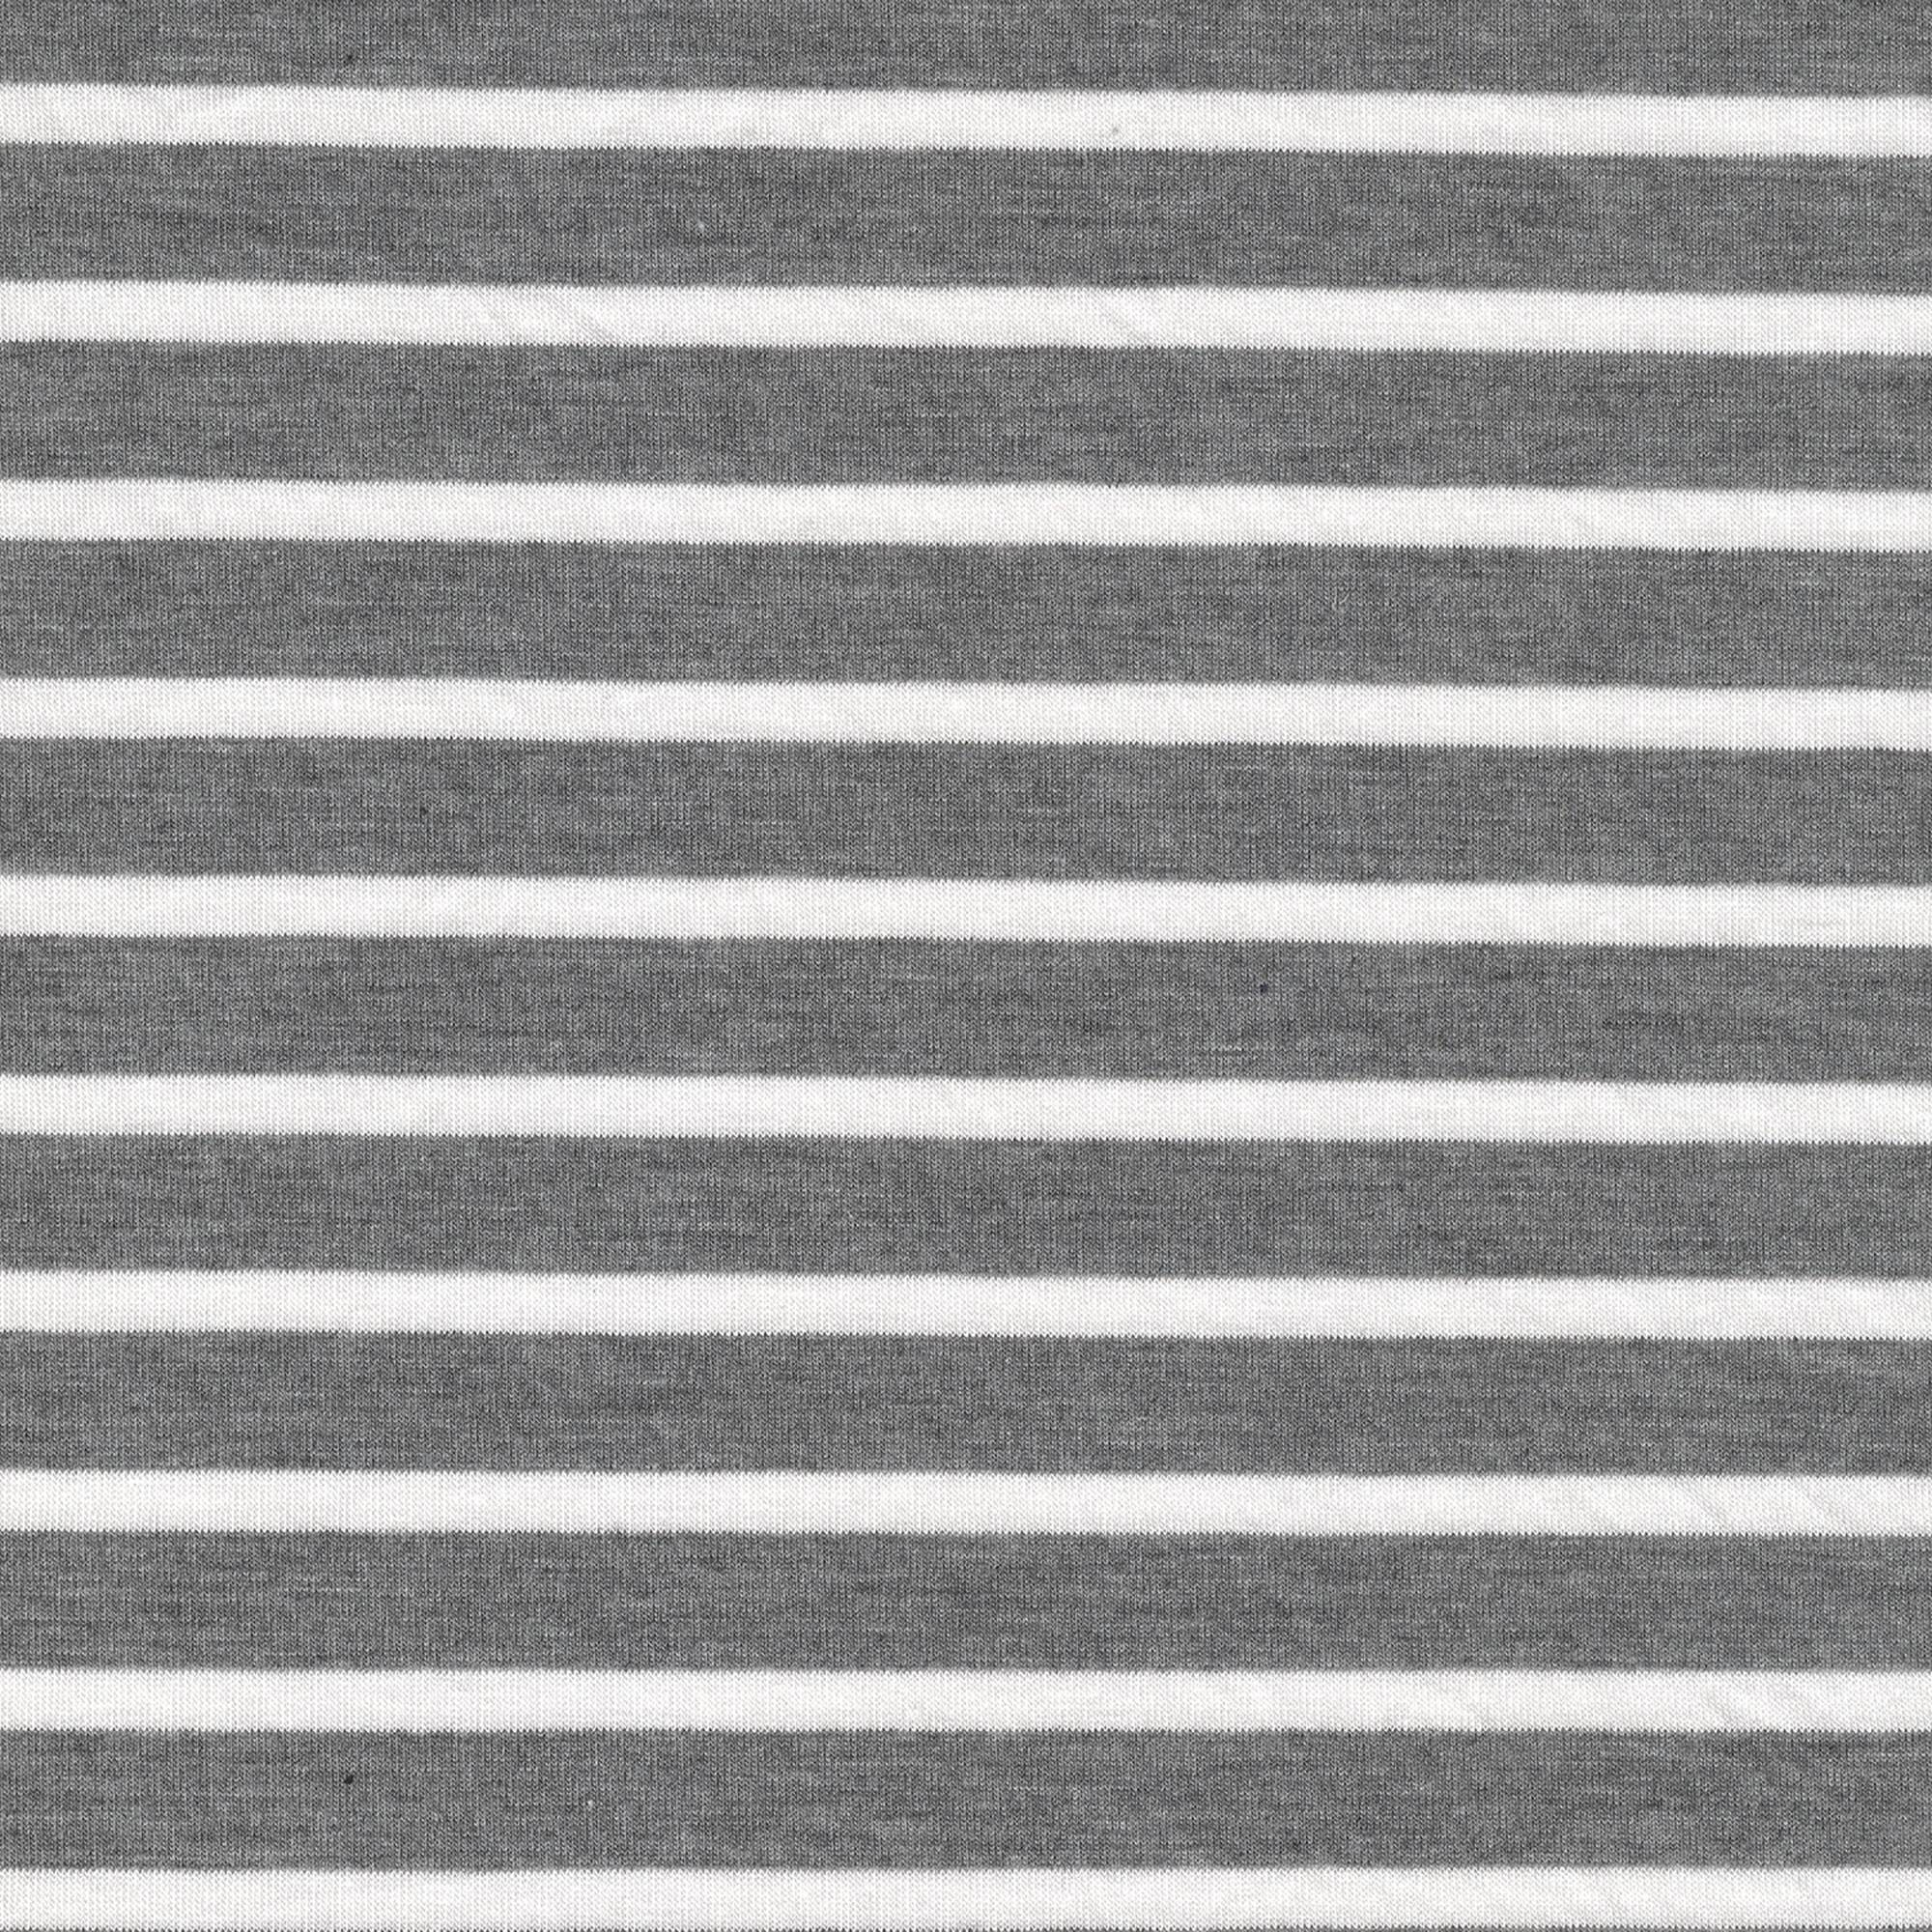 SHASON TEXTILE (3 Yards cut) CLASSIC SEW YARN DYED STRIPE FABRIC, GRAY / WHITE